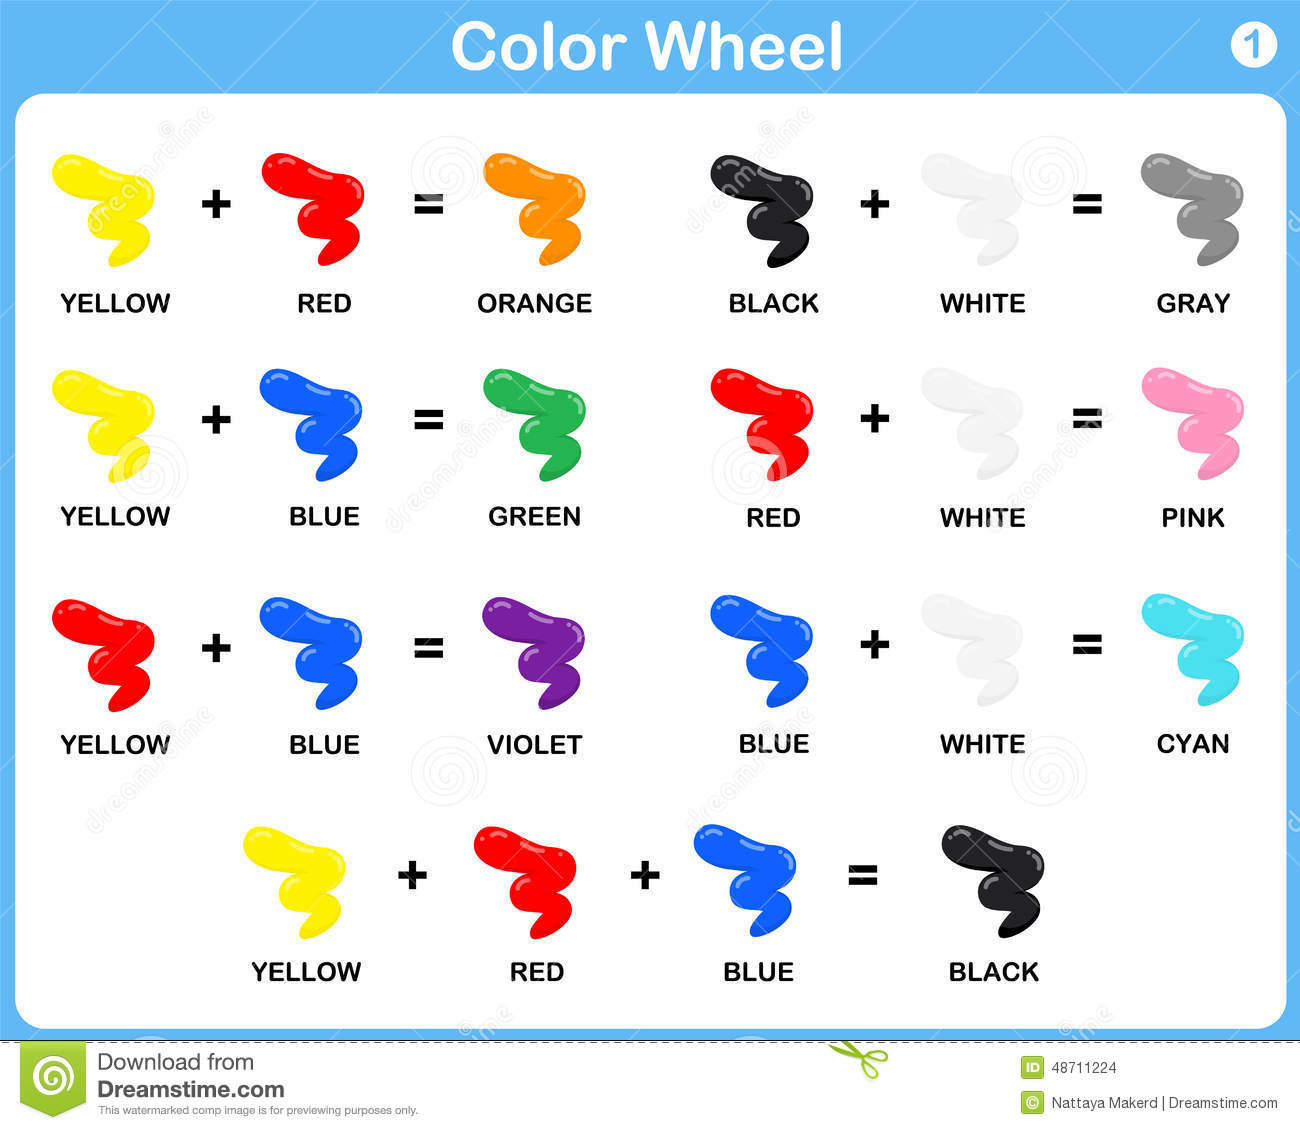 Color theory worksheet for kids - Color Wheel Worksheet For Kids Stock Images